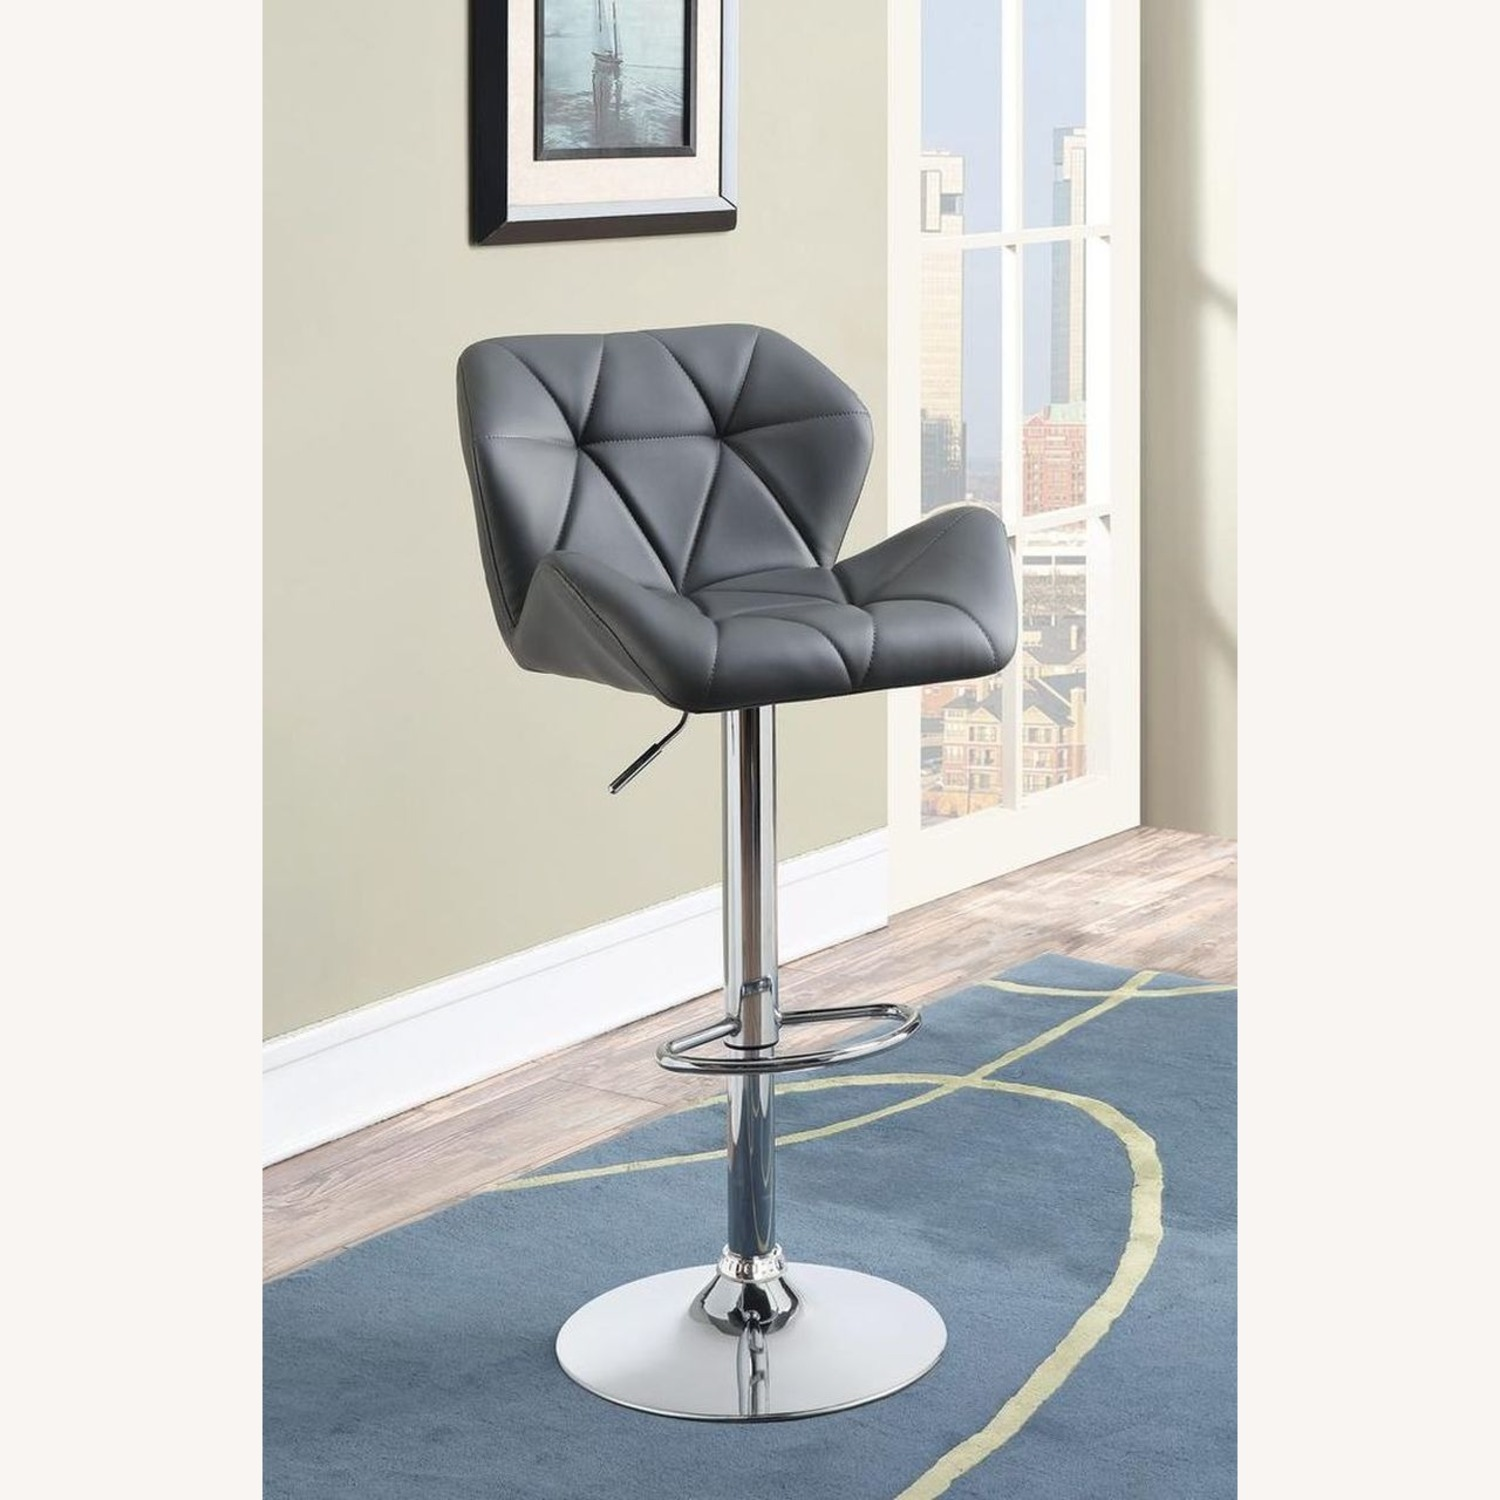 Adjustable In Grey Leather W/ Chrome Base - image-3